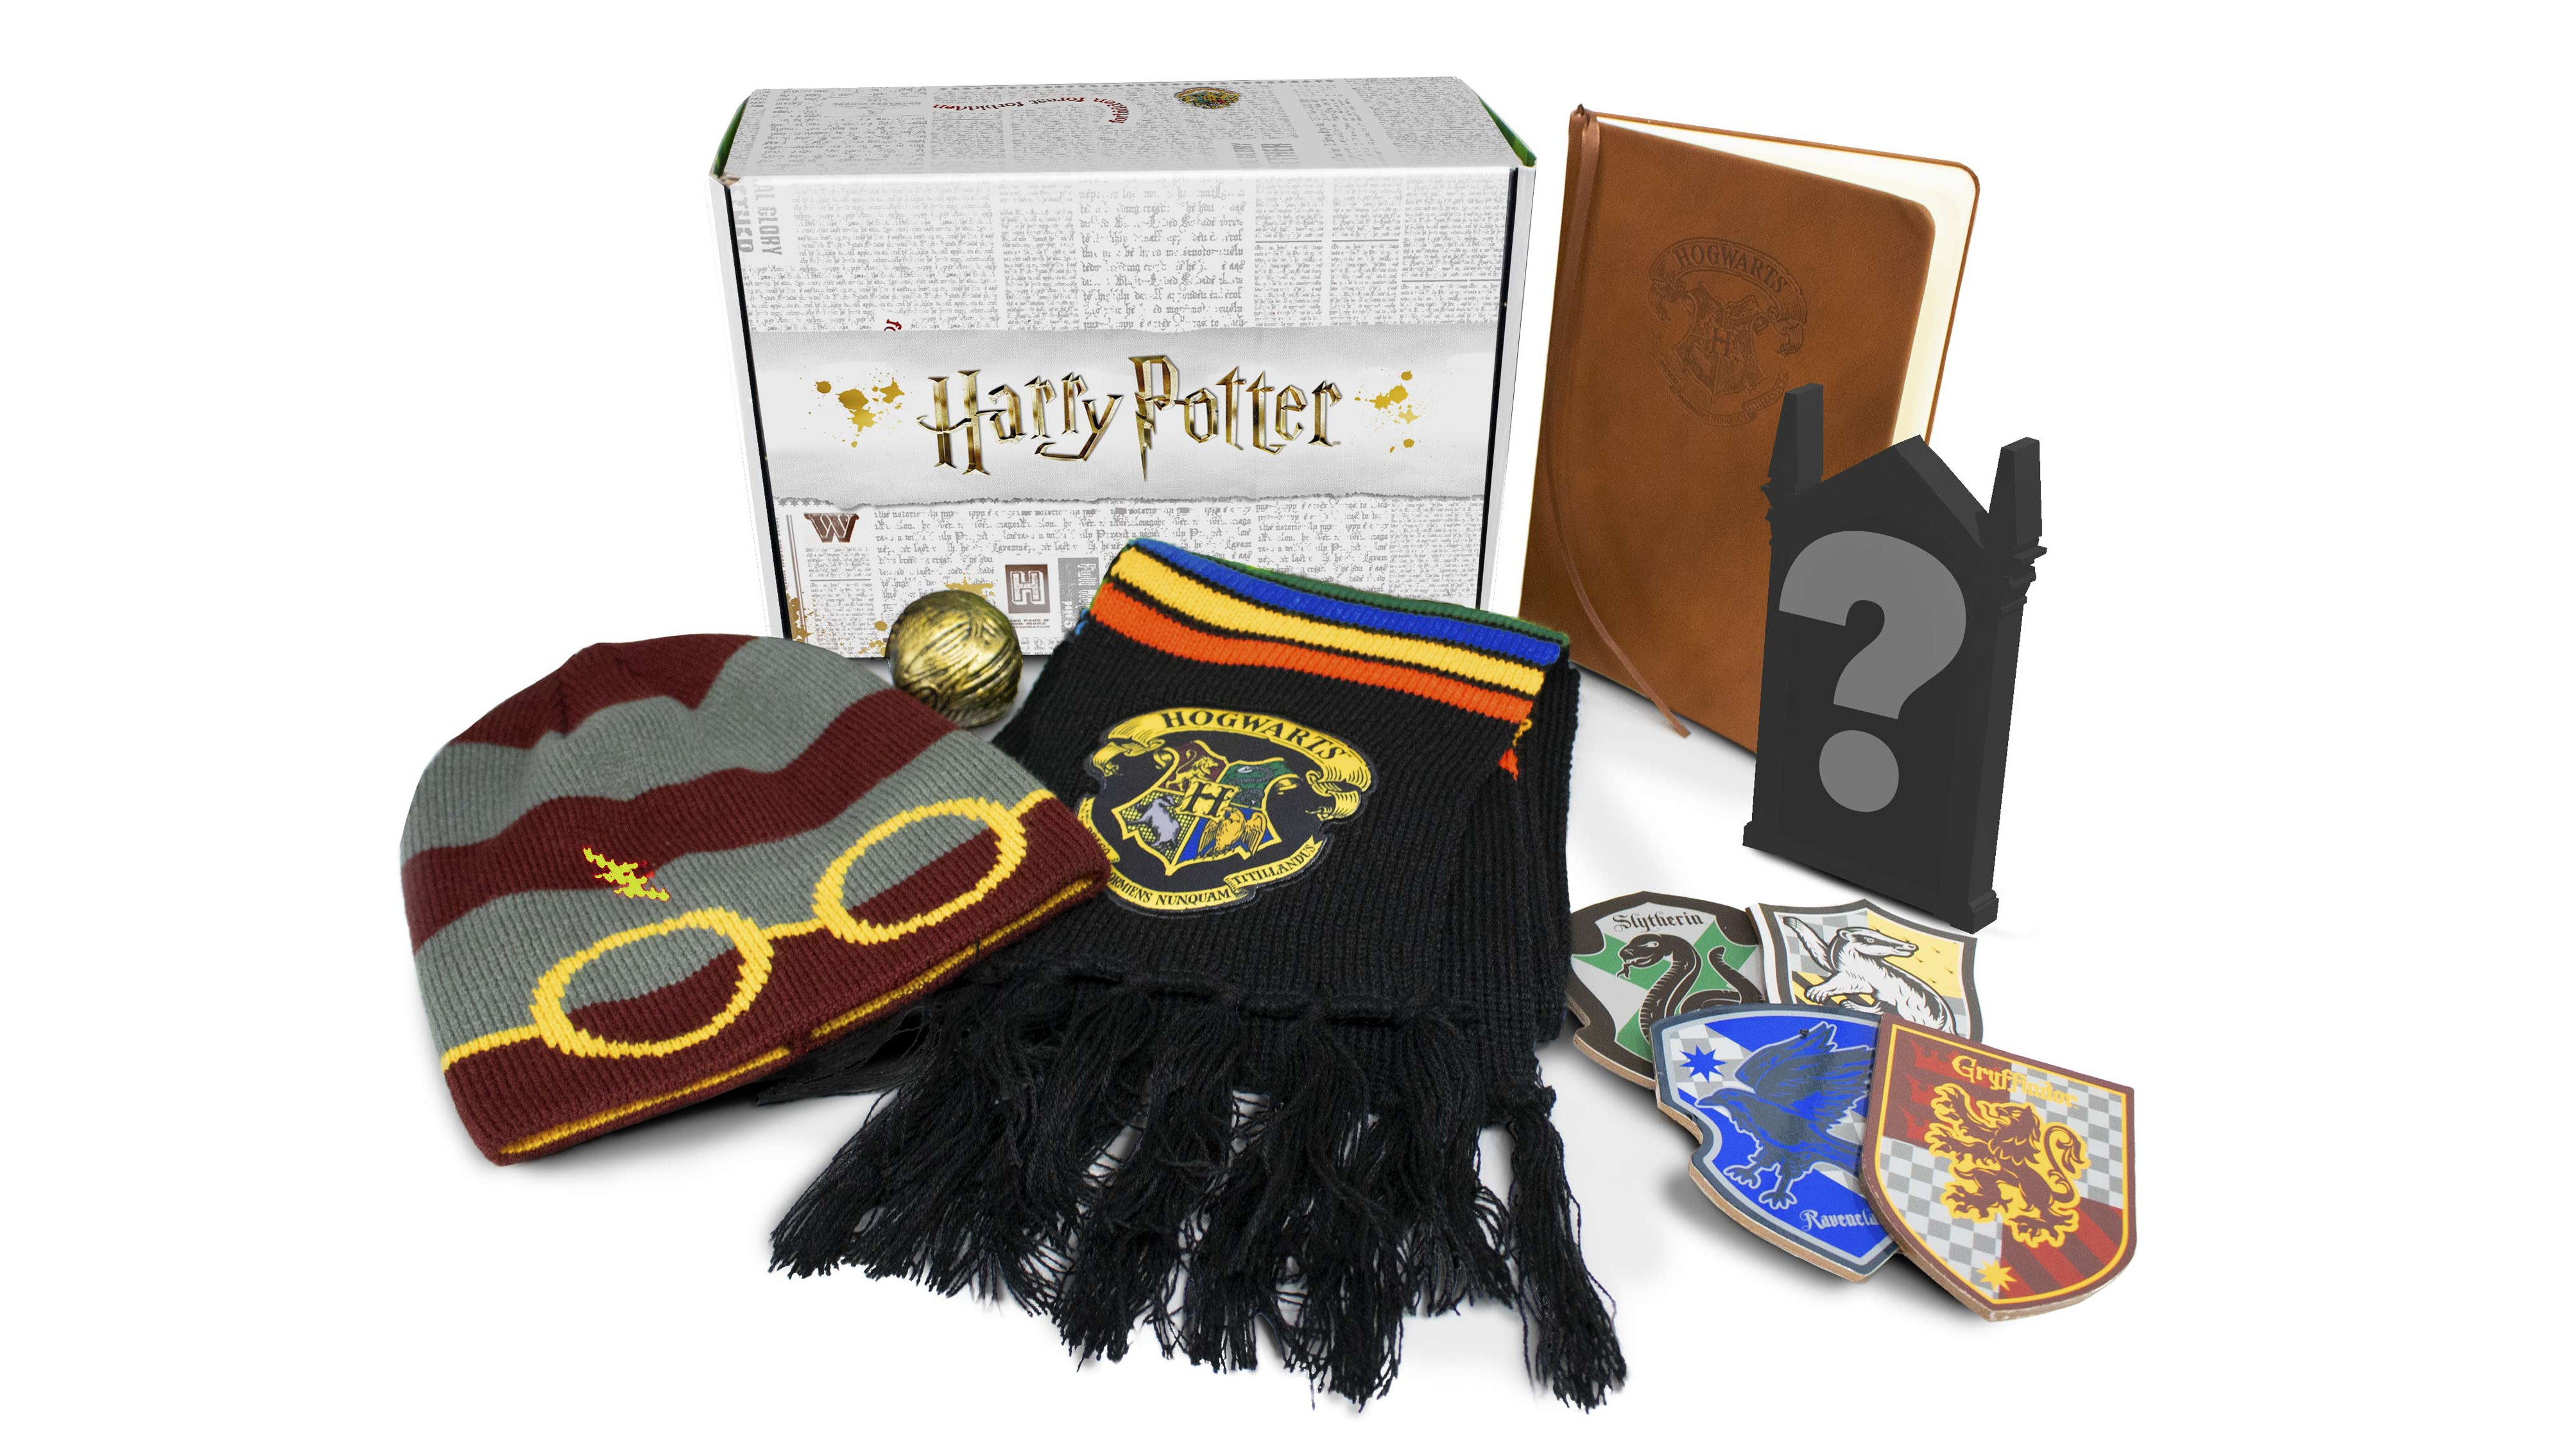 Harry Potter Collectors Box from CultureFly